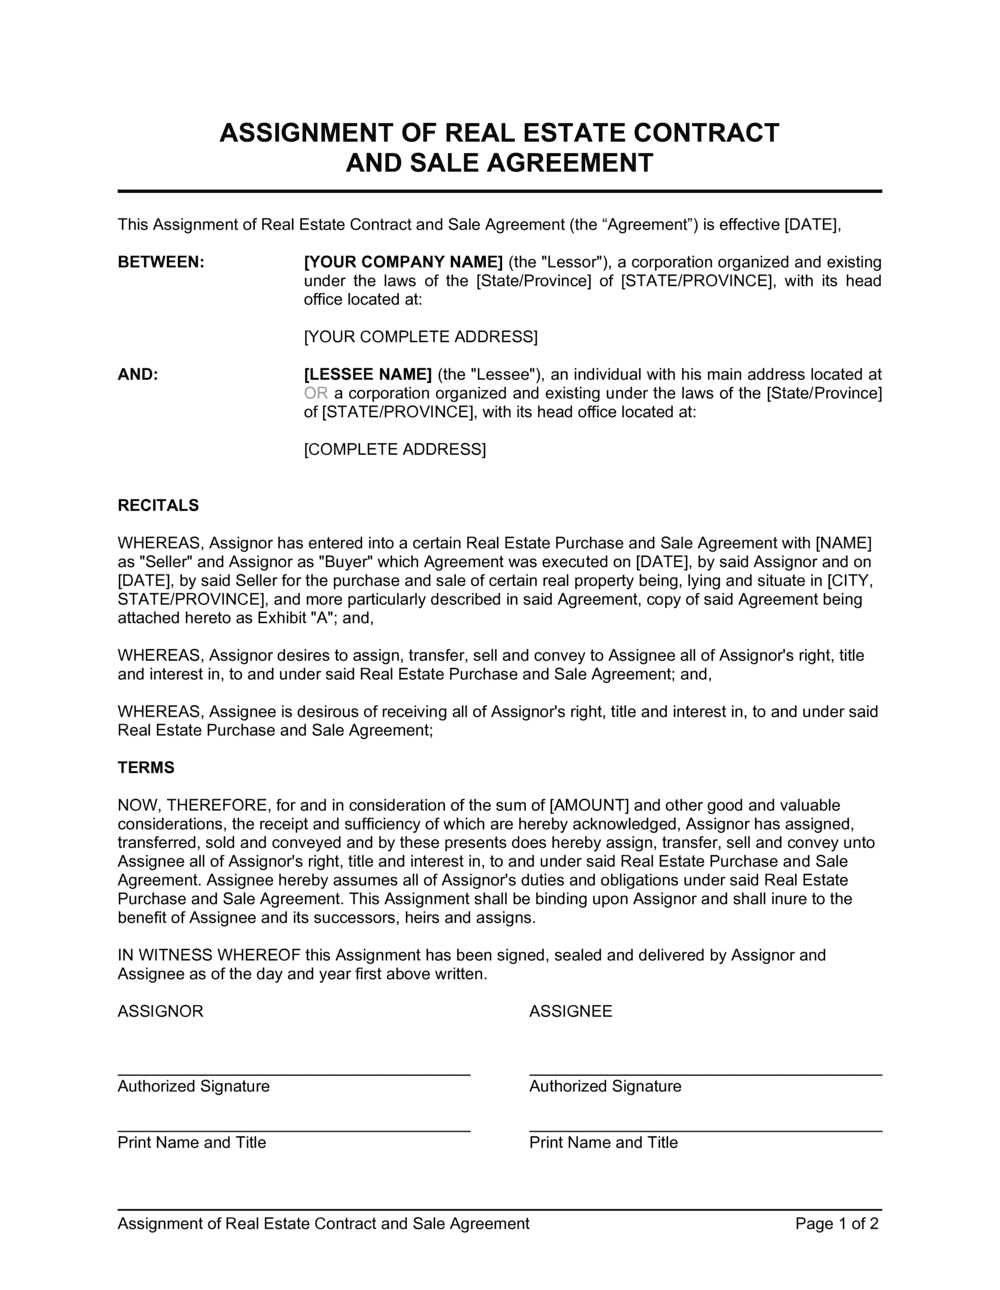 Business-in-a-Box's Assignment of Real Estate Contract and Sale Agreement Template